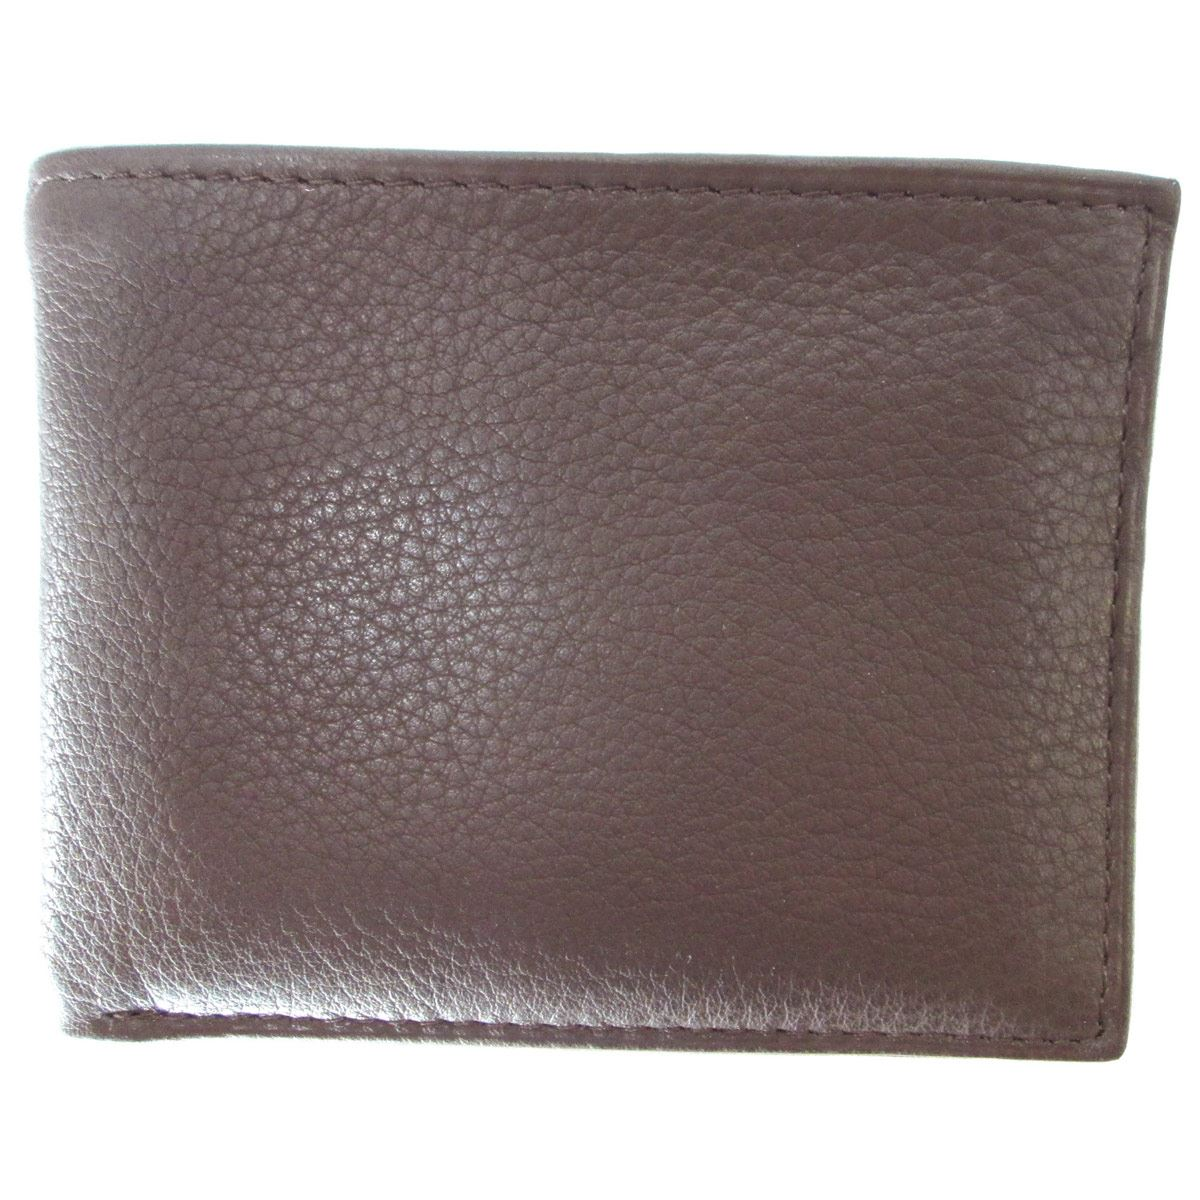 Billetera Café L77-0081-2 Perry Ellis